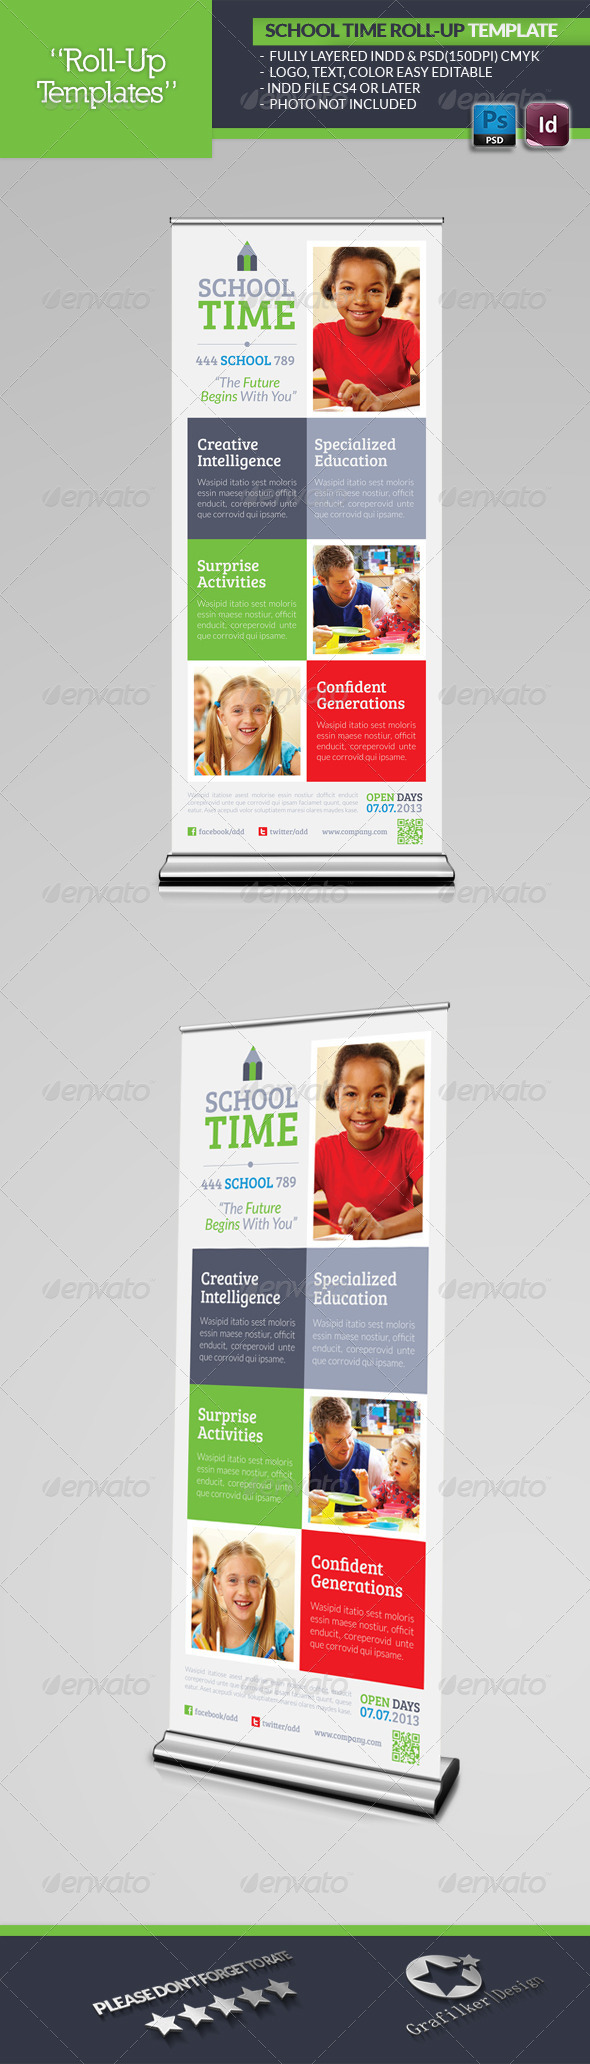 School Time Roll-Up Template - Signage Print Templates